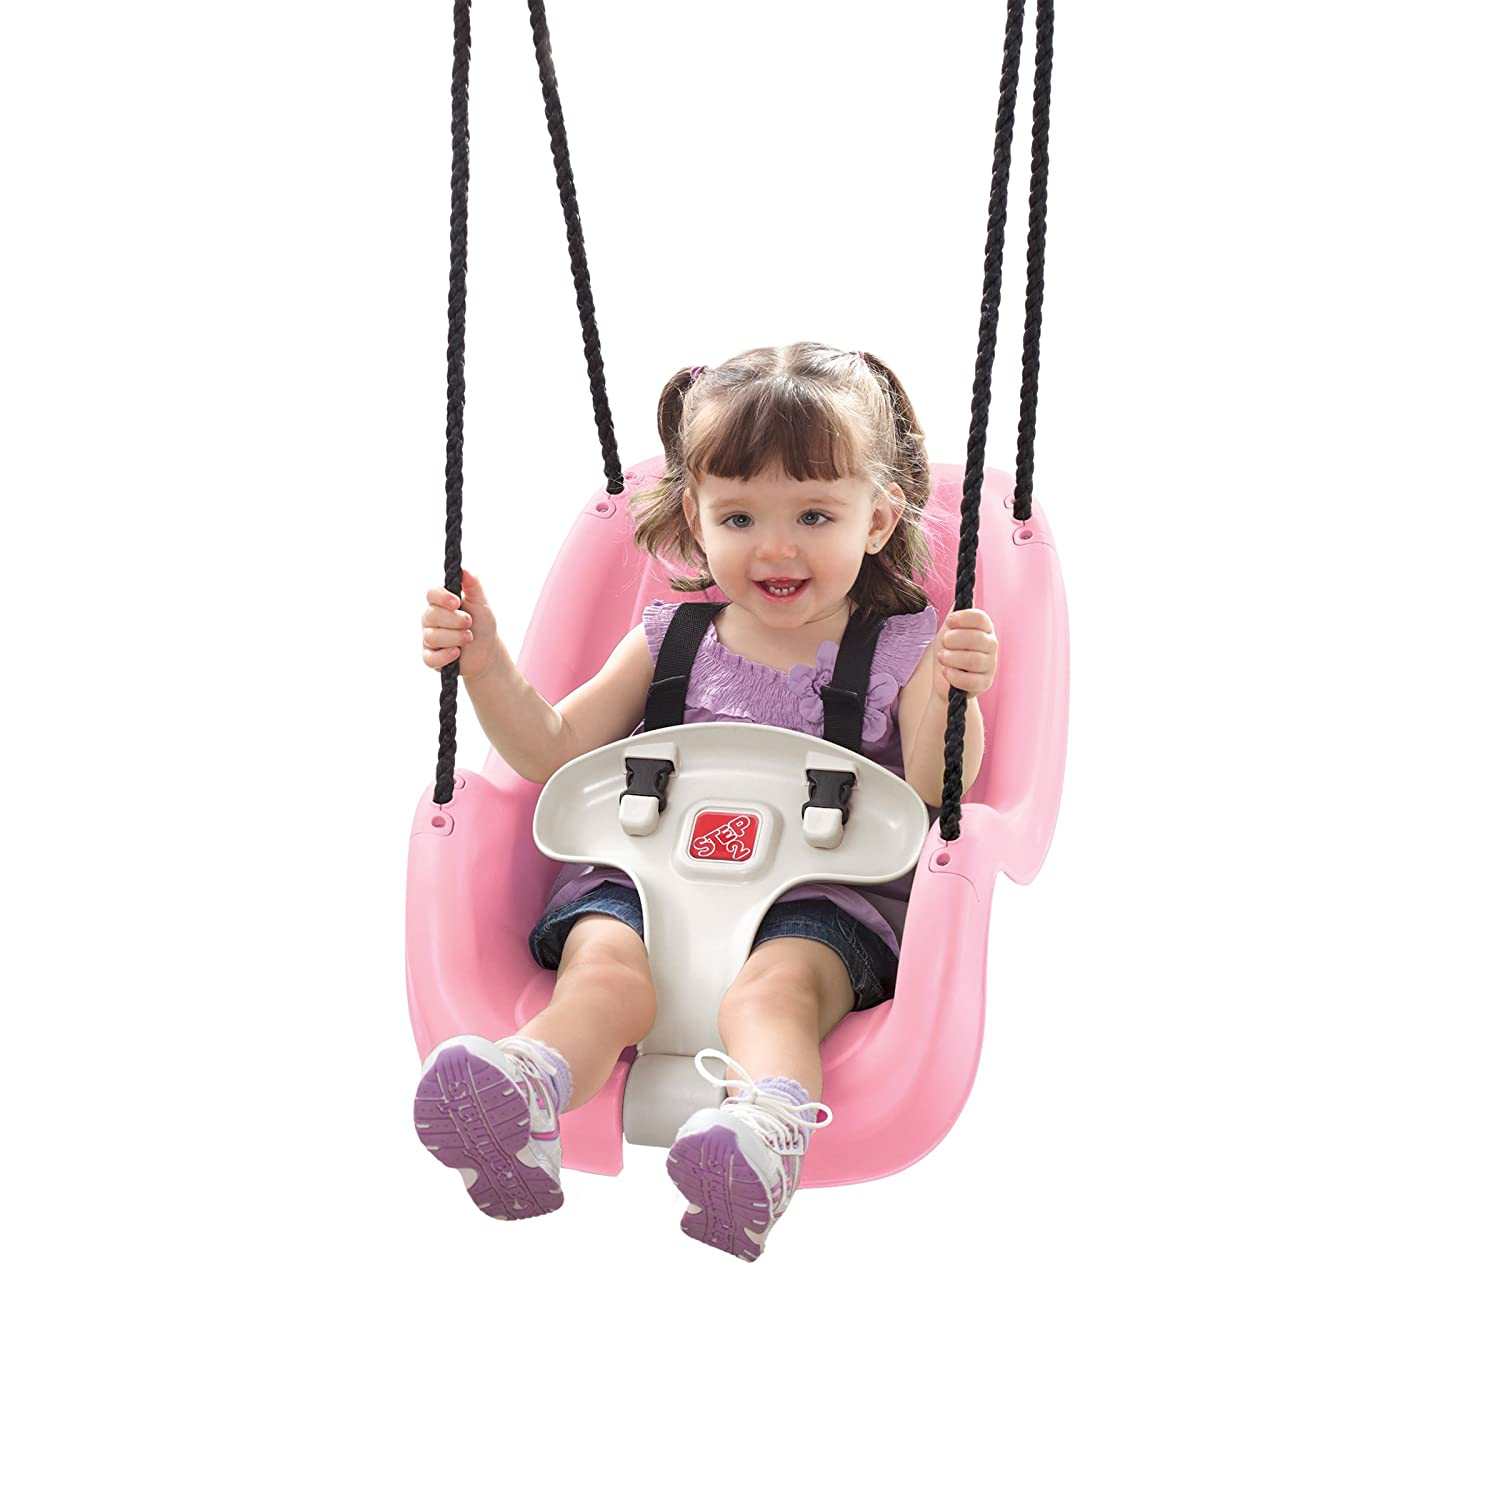 Amazon Step2 Infant To Toddler Swing Seat Pink Toys Games